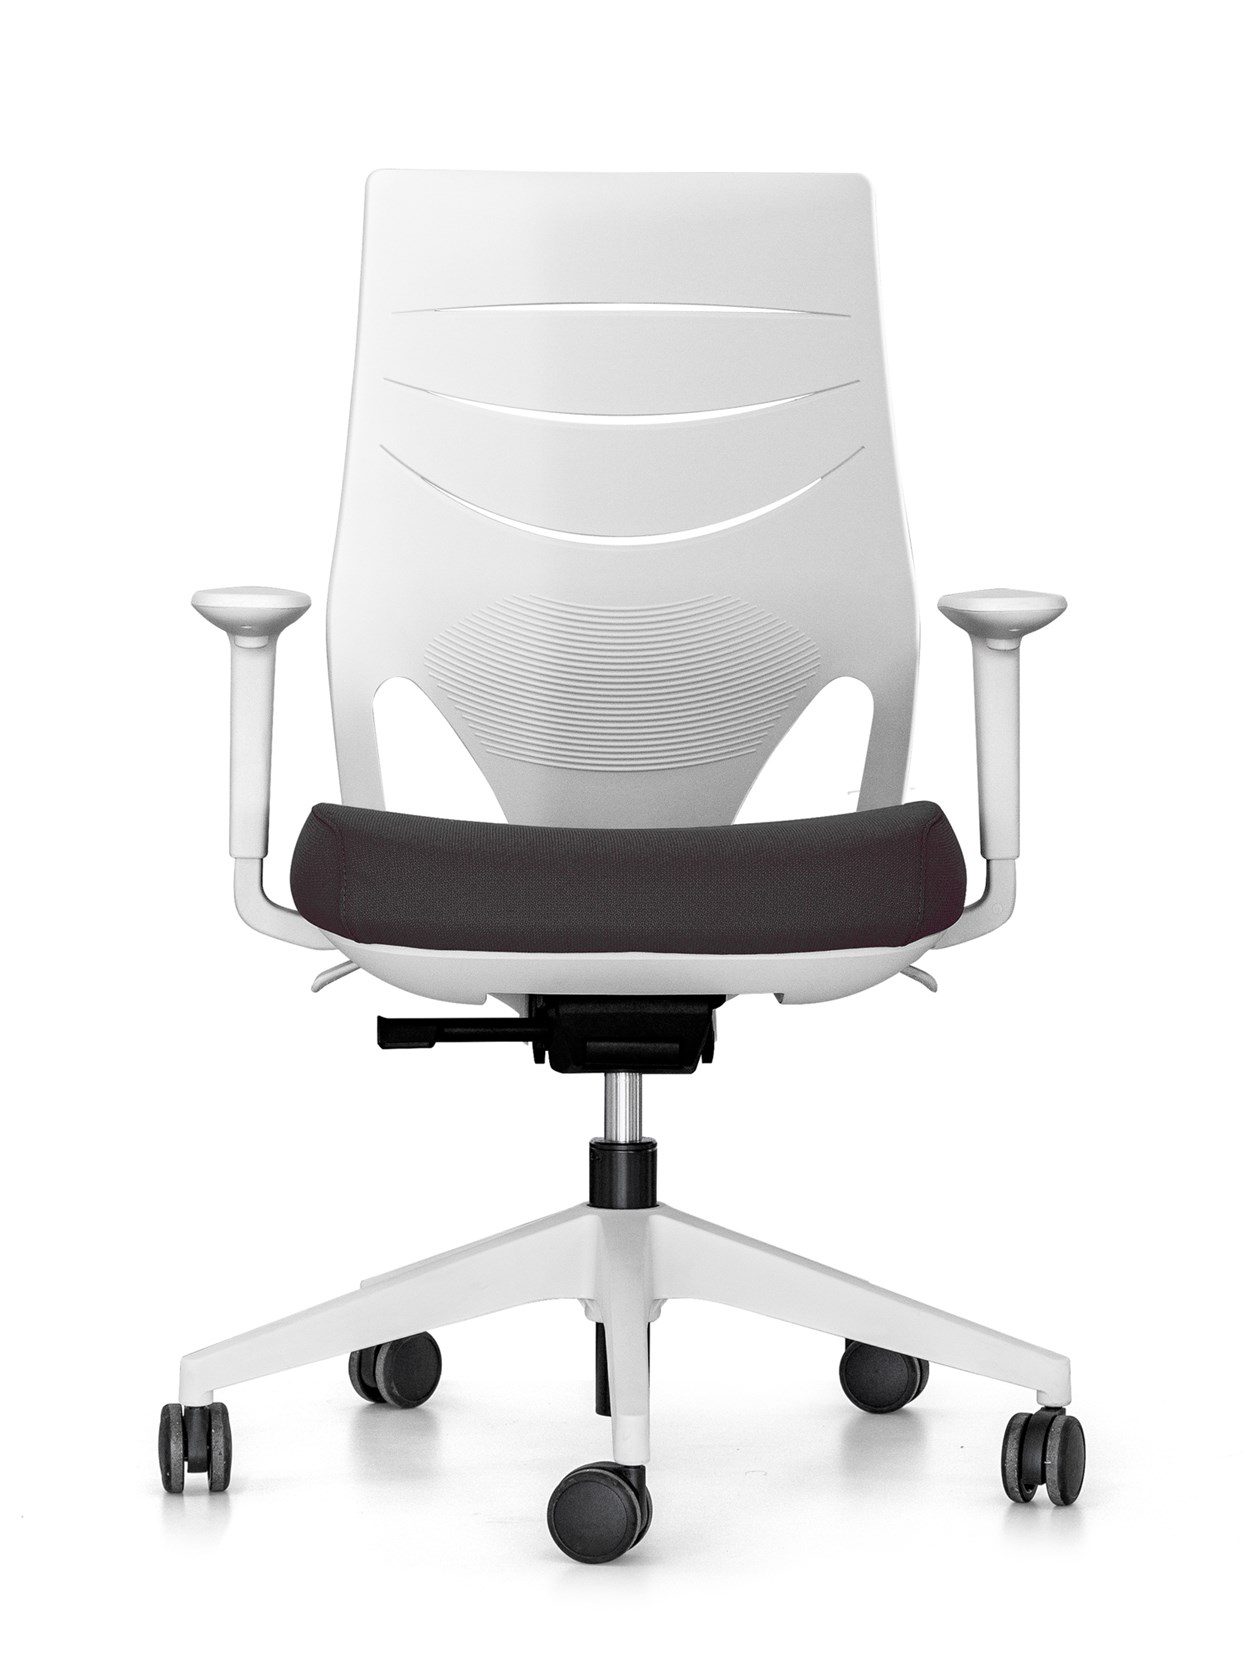 actiu-efit-office-chair-3.jpg